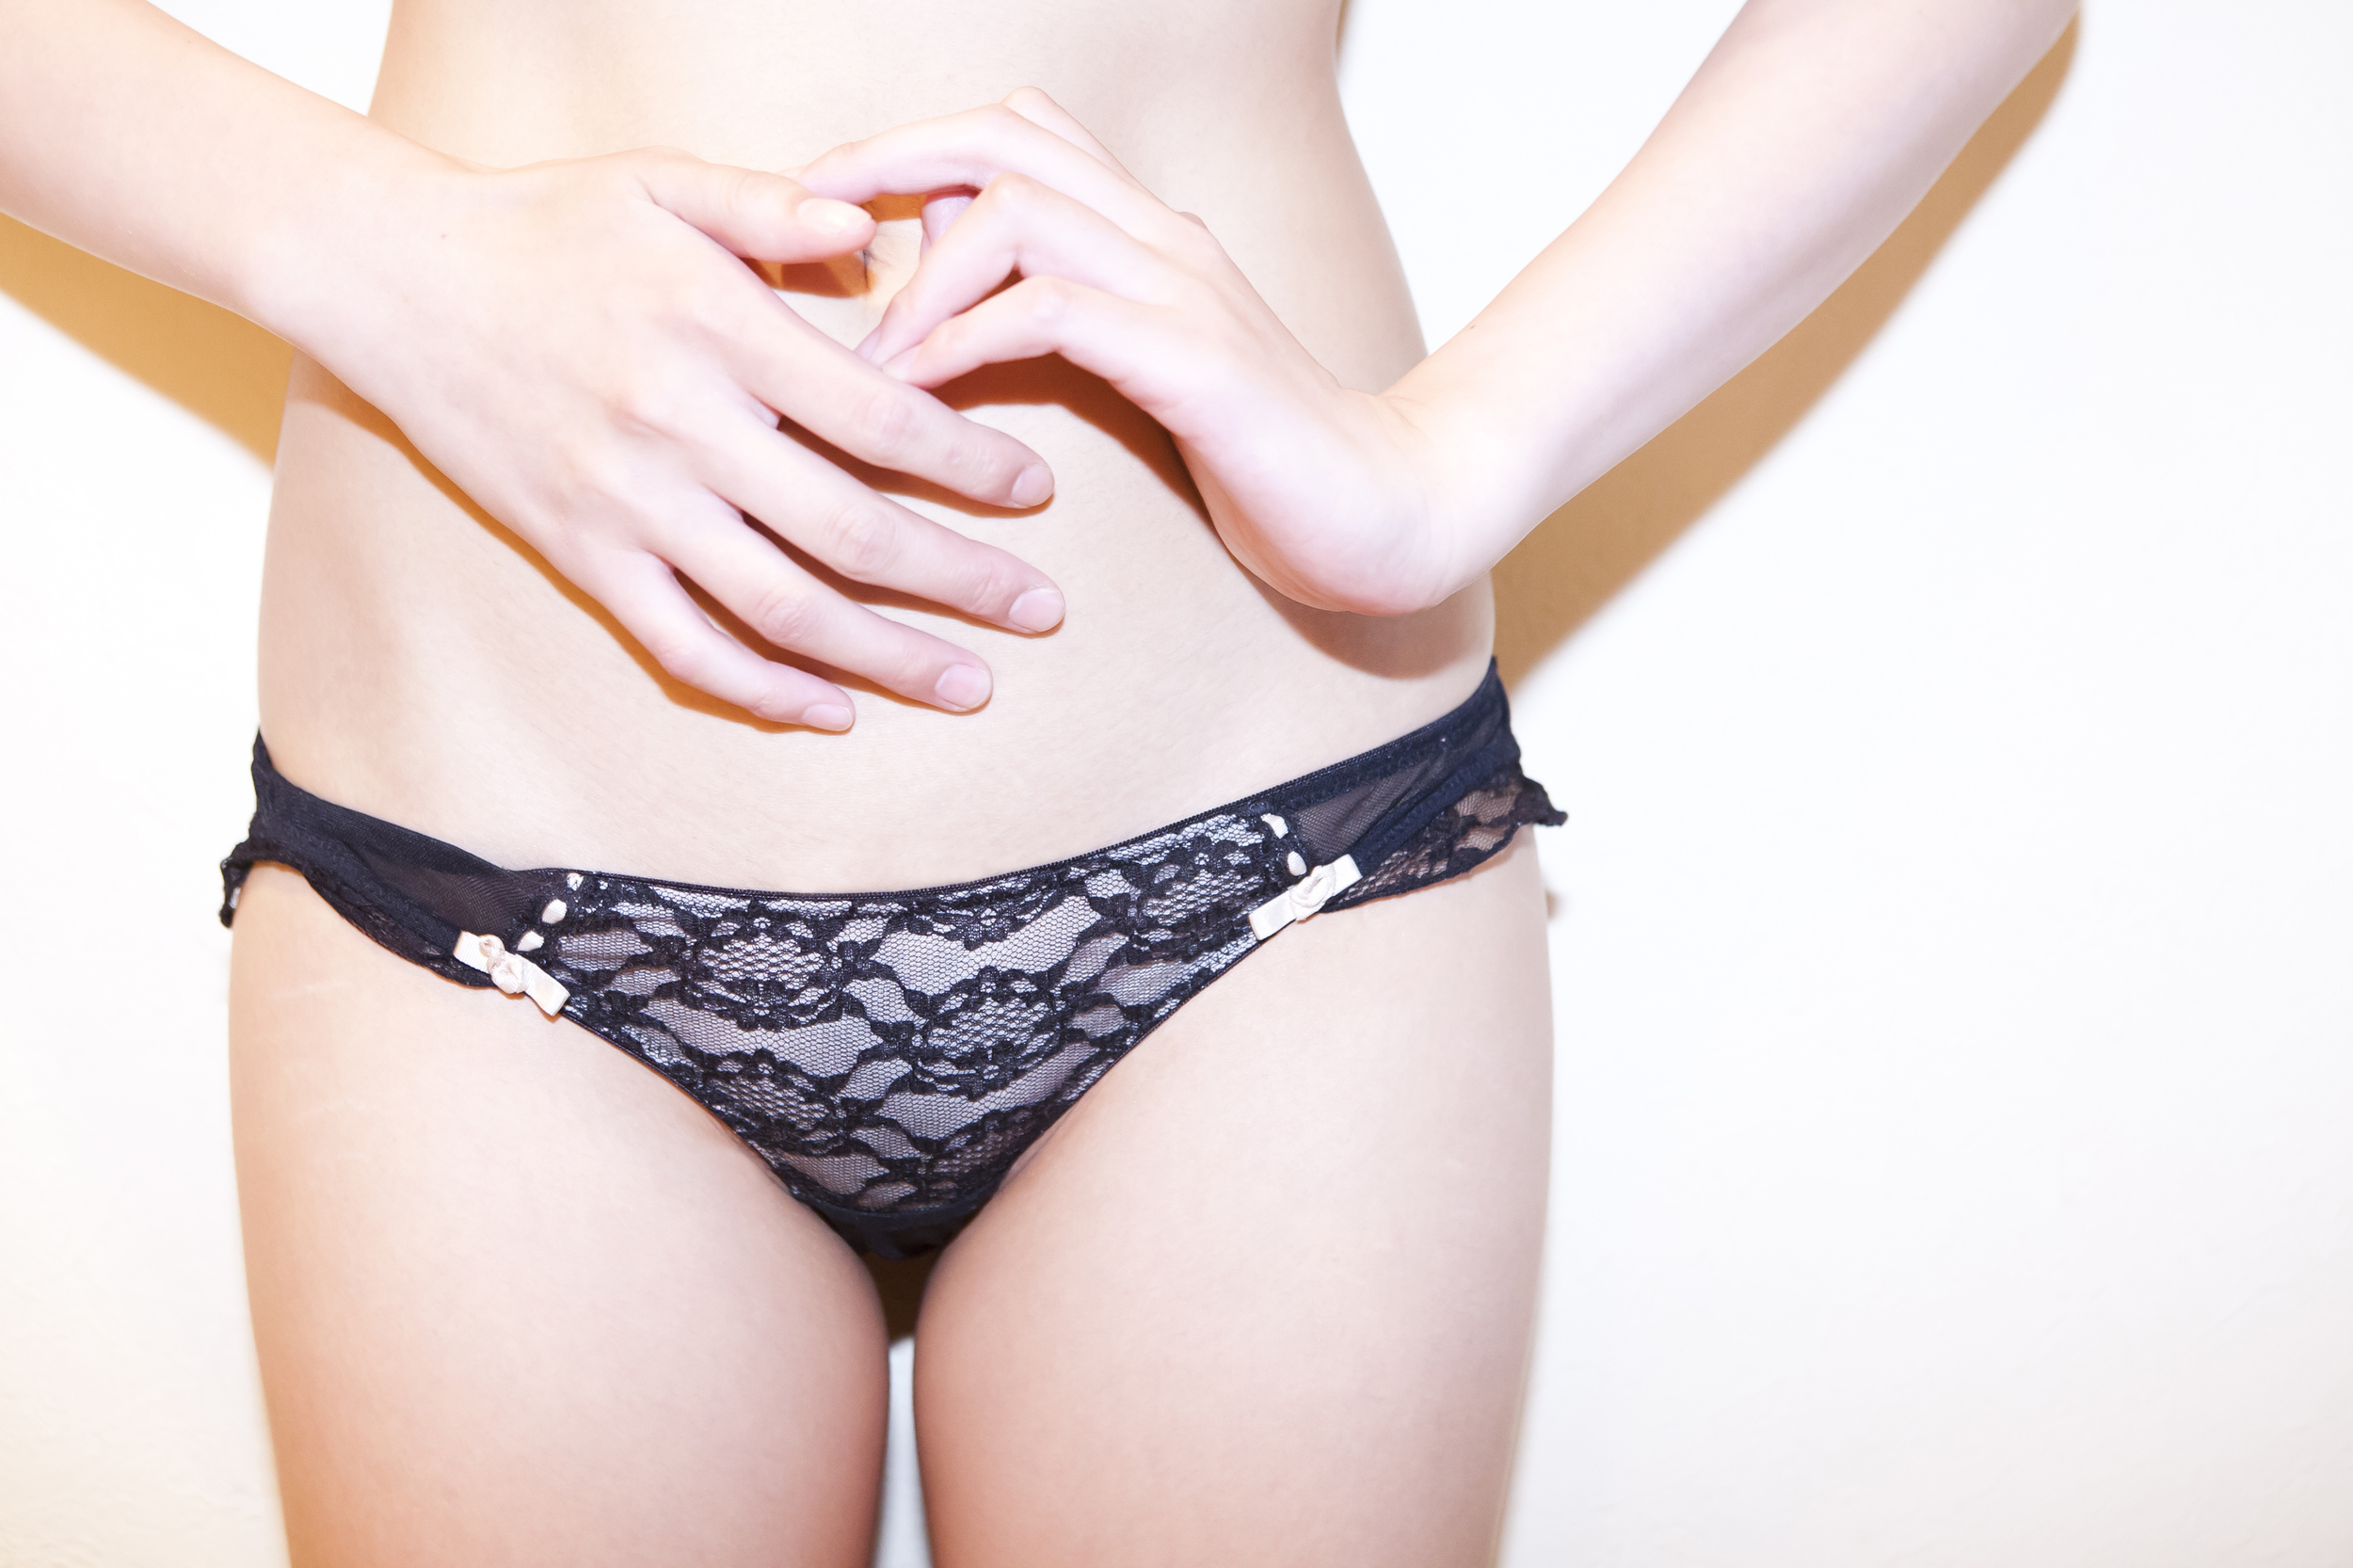 Slick Chicks Underwear Allow Women to Change Panties Without ...